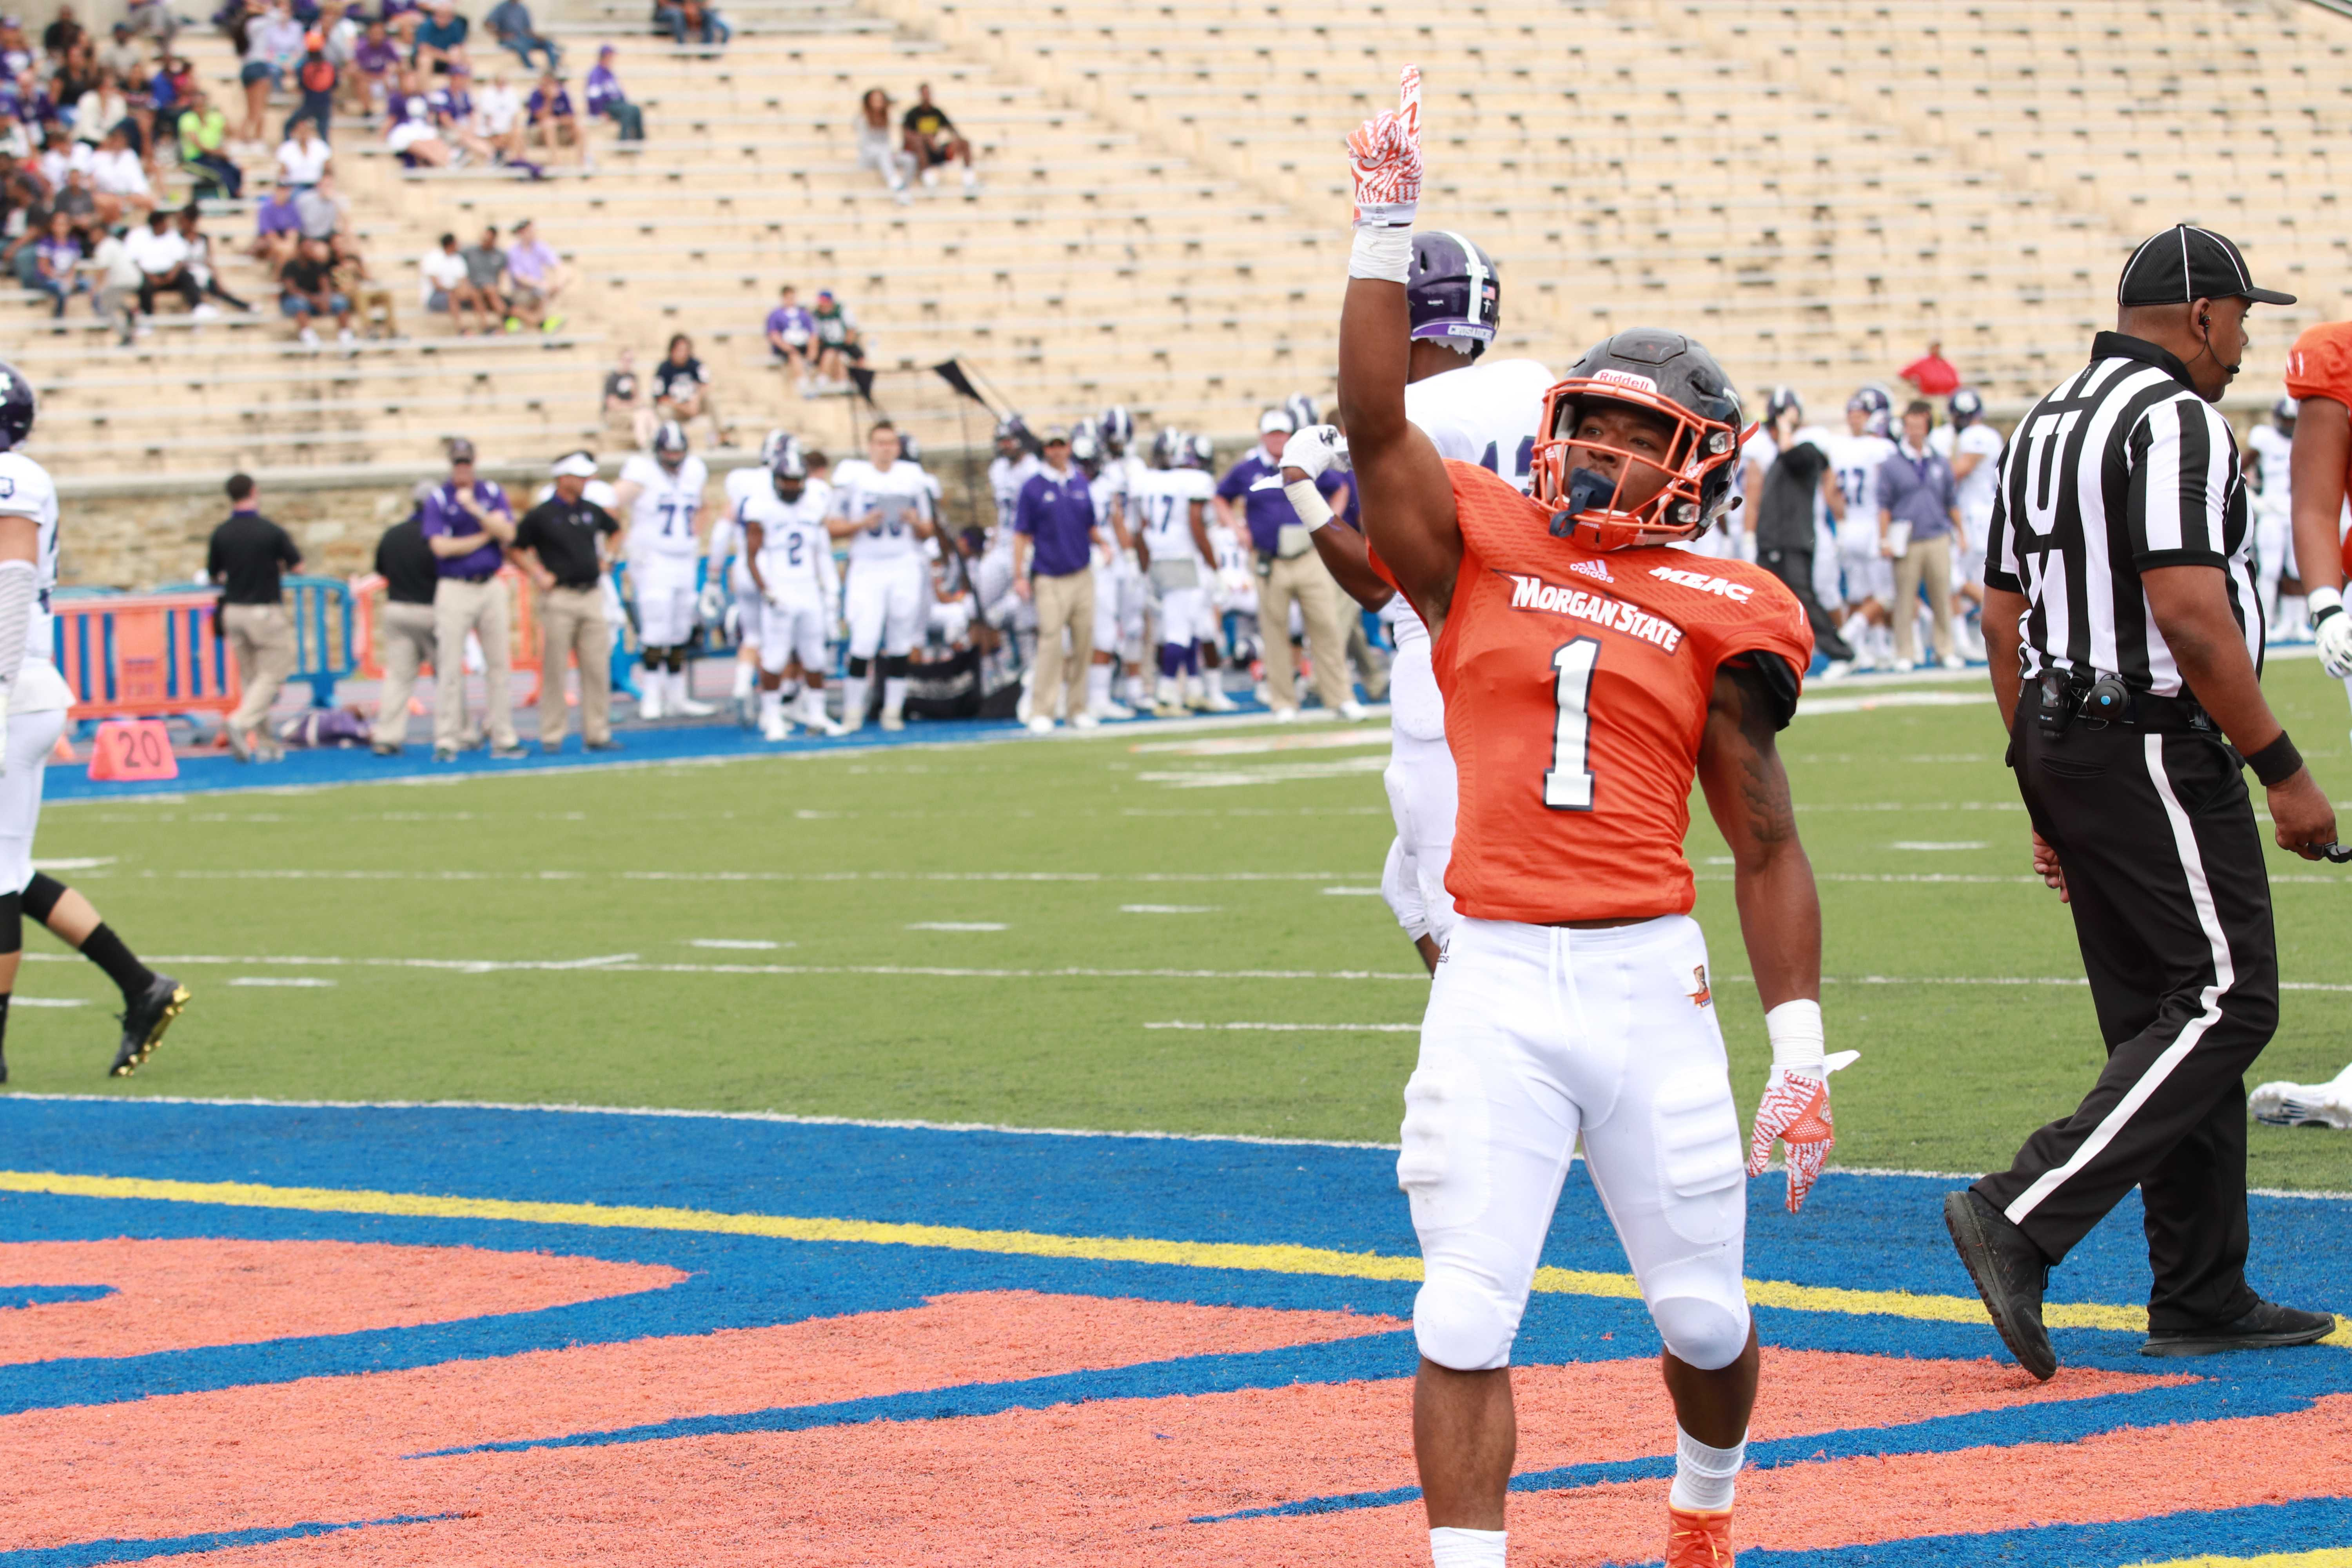 Senior running back Orlando Johnson celebrates after a touchdown against Holy Cross. Photo by Terry Wright.